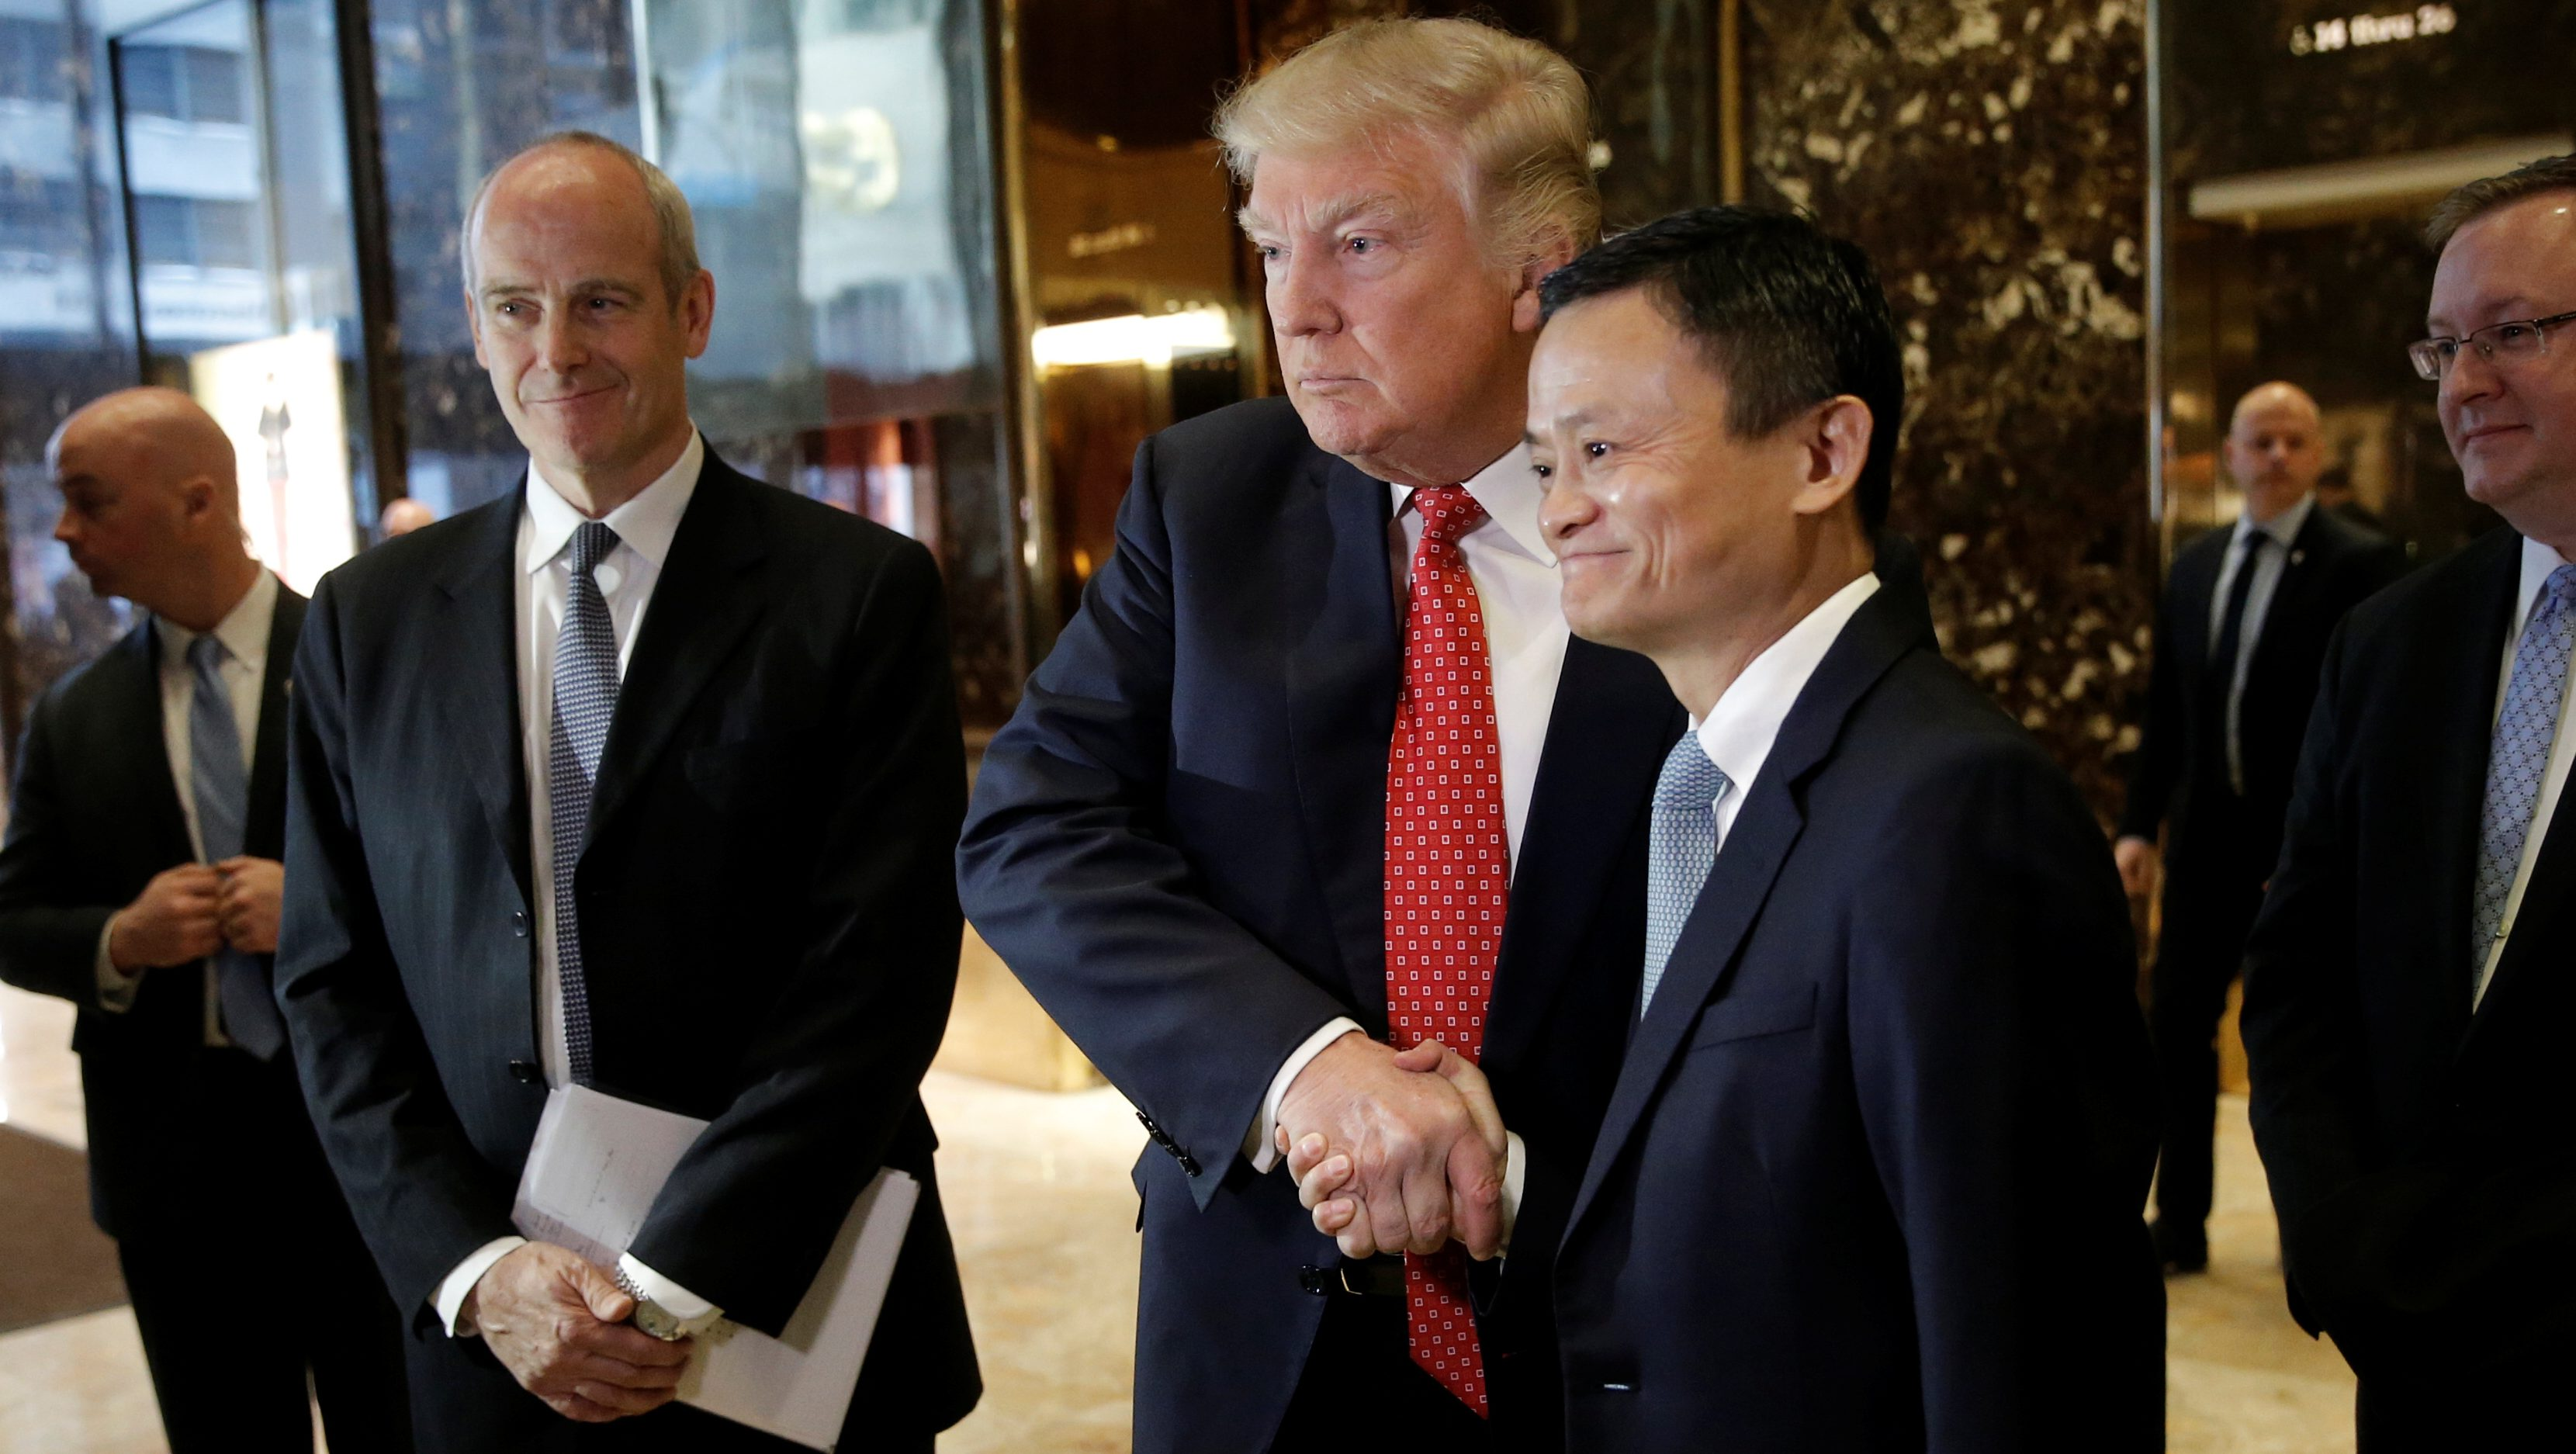 U.S. President-elect Donald Trump shakes hands with and Alibaba executive chairman Jack Ma after their meeting at Trump Tower in New York, U.S., January 9, 2017.